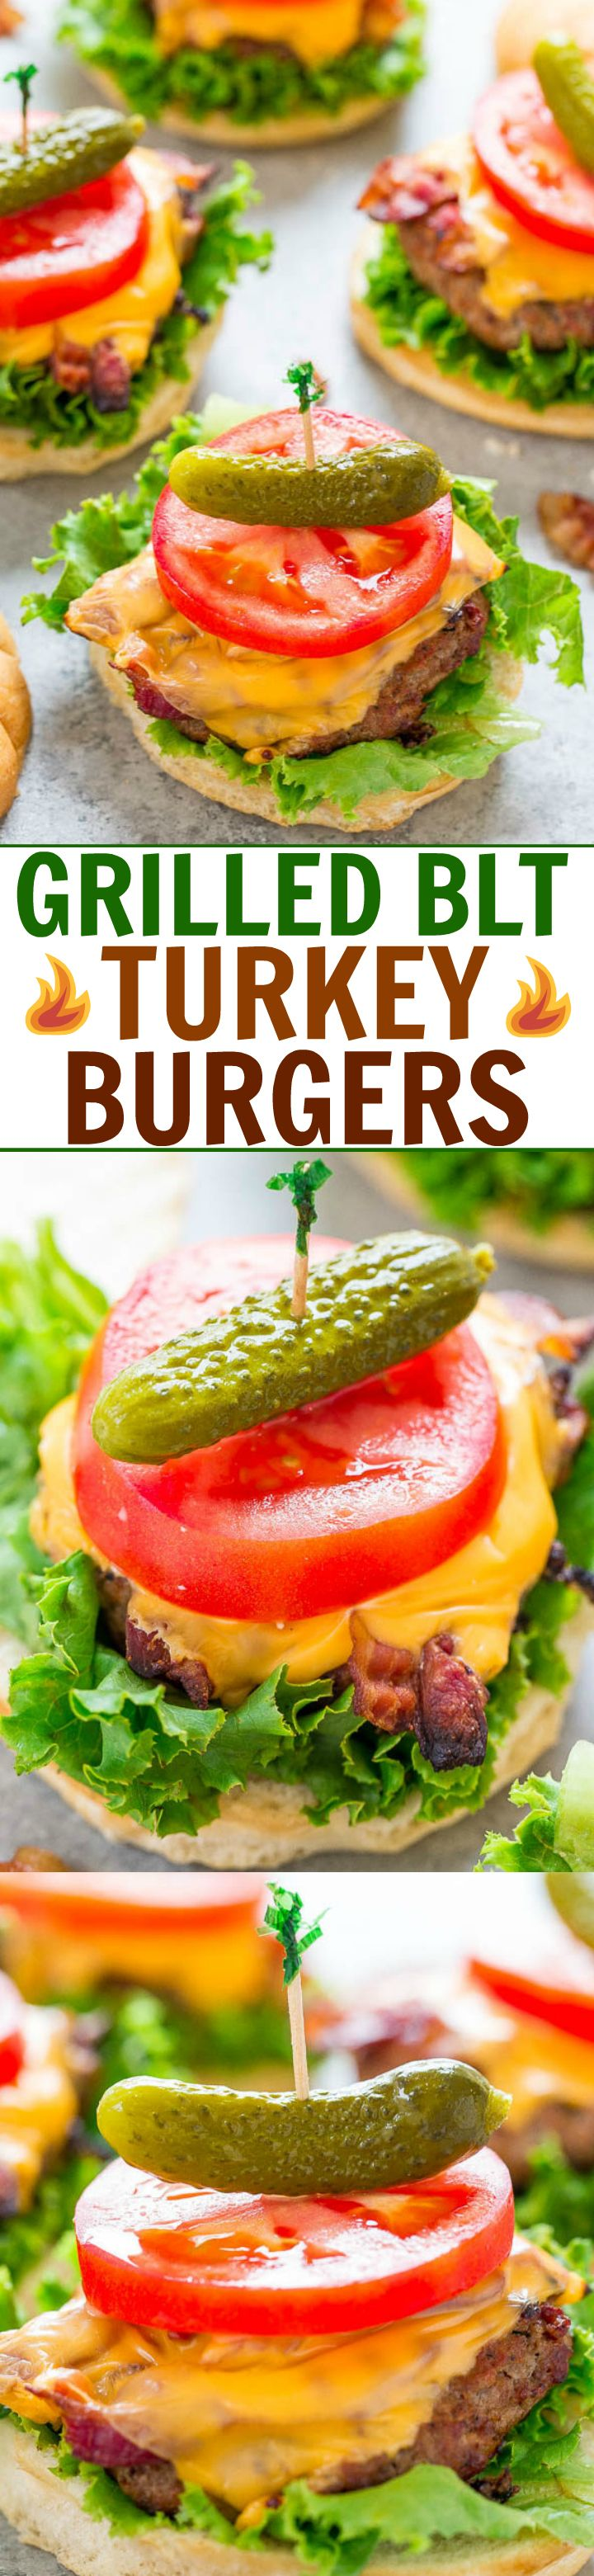 Grilled BLT Turkey Burgers - JUICY burgers topped with cheese, bacon, lettuce, and tomato!! EASY, ready in 15 minutes, and perfect for summer parties!! Healthier than beef and IRRESISTIBLE!!